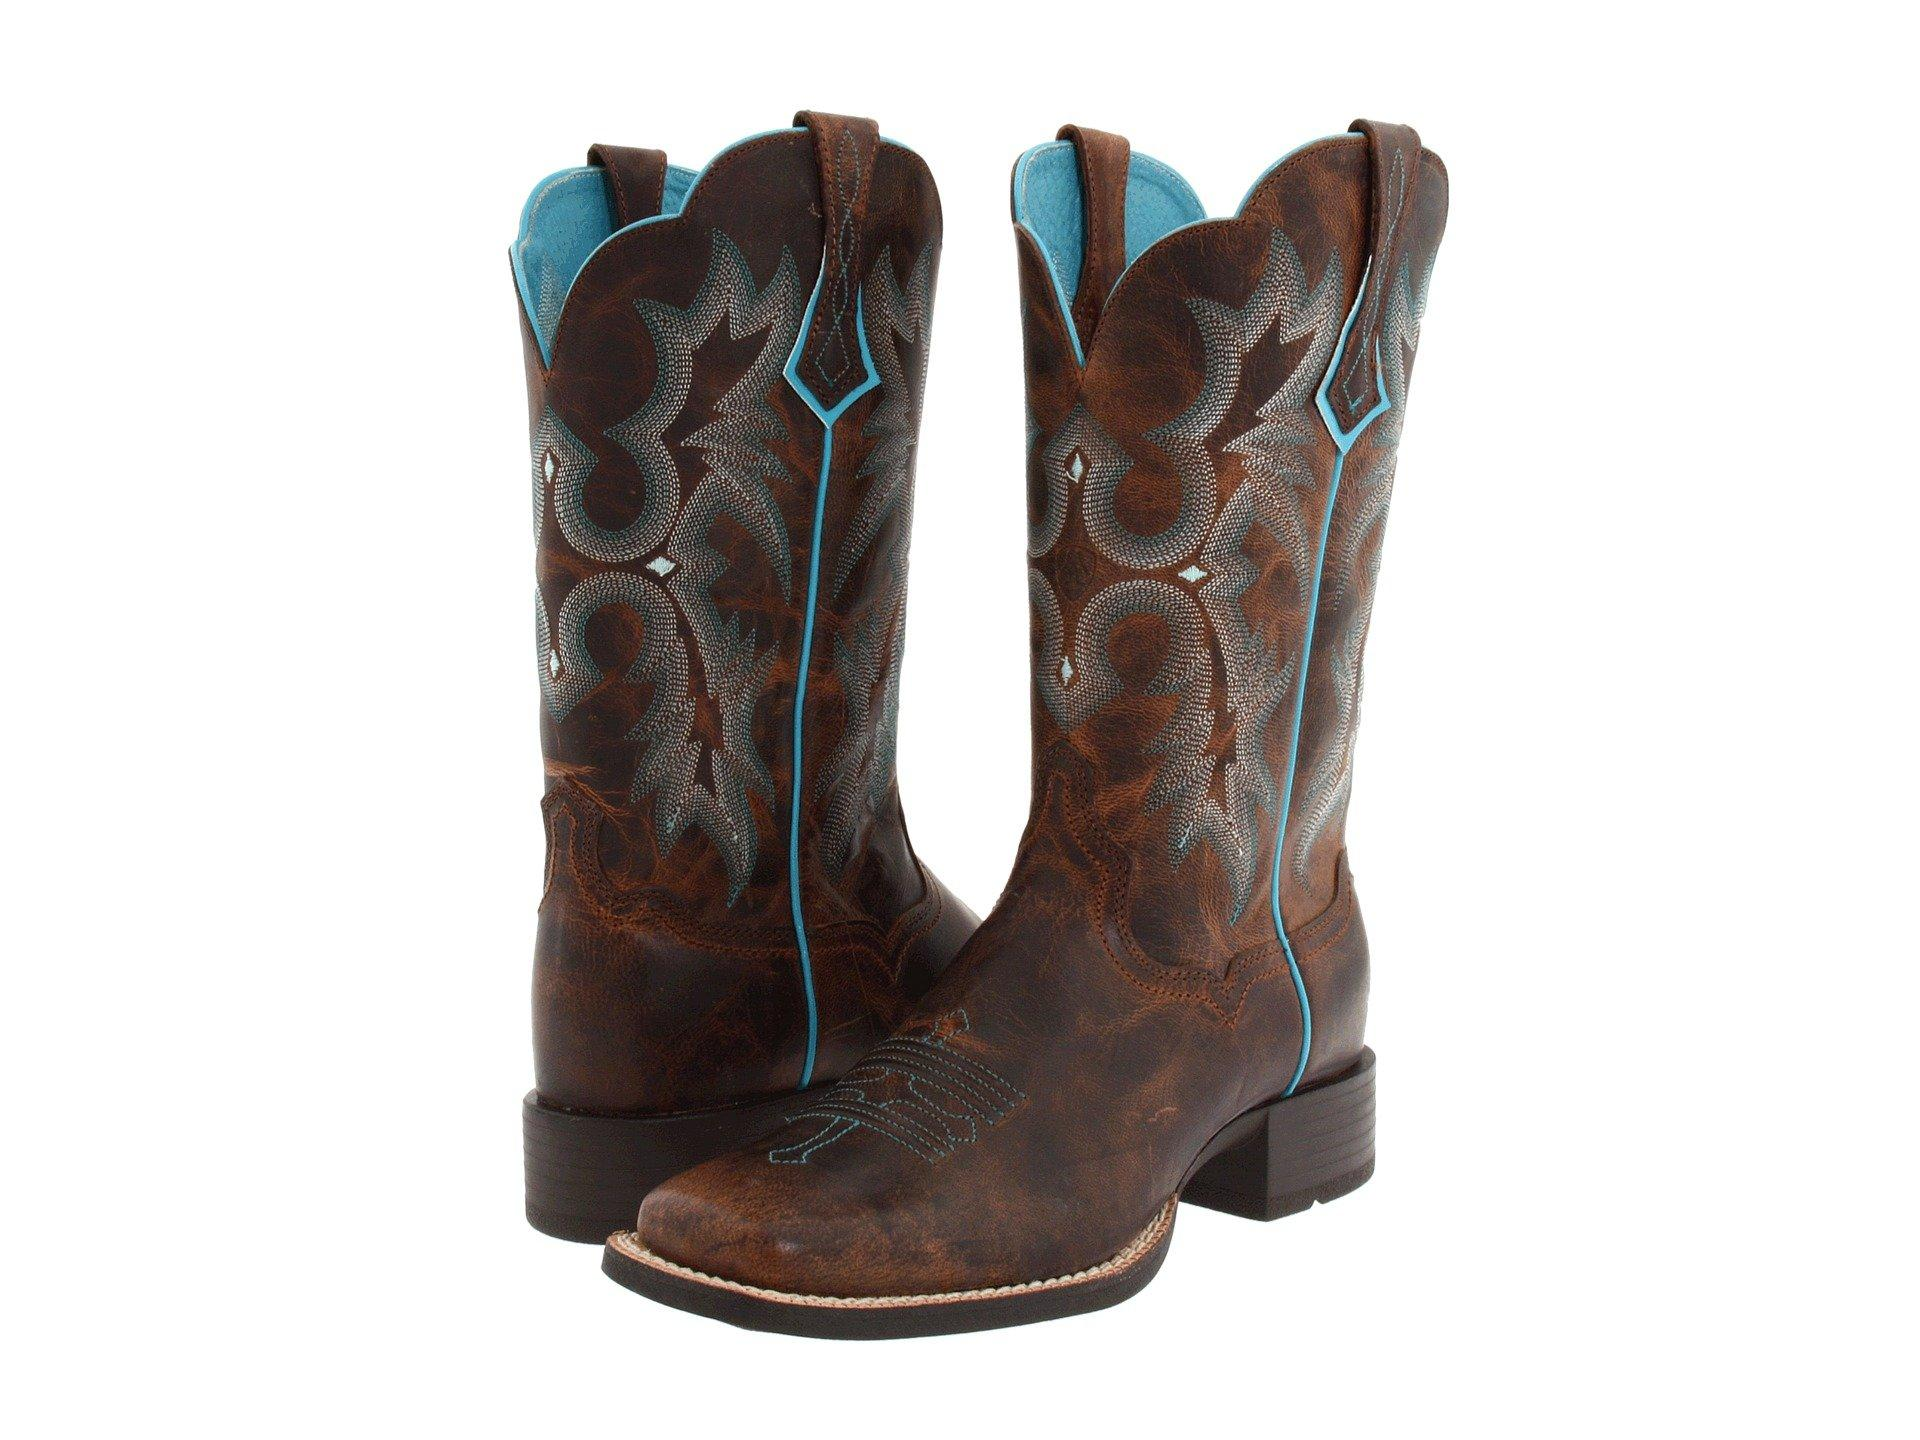 21e7412793 Lyst - Ariat Tombstone (sassy Brown) Cowboy Boots in Brown ariat tombstone  women s boots